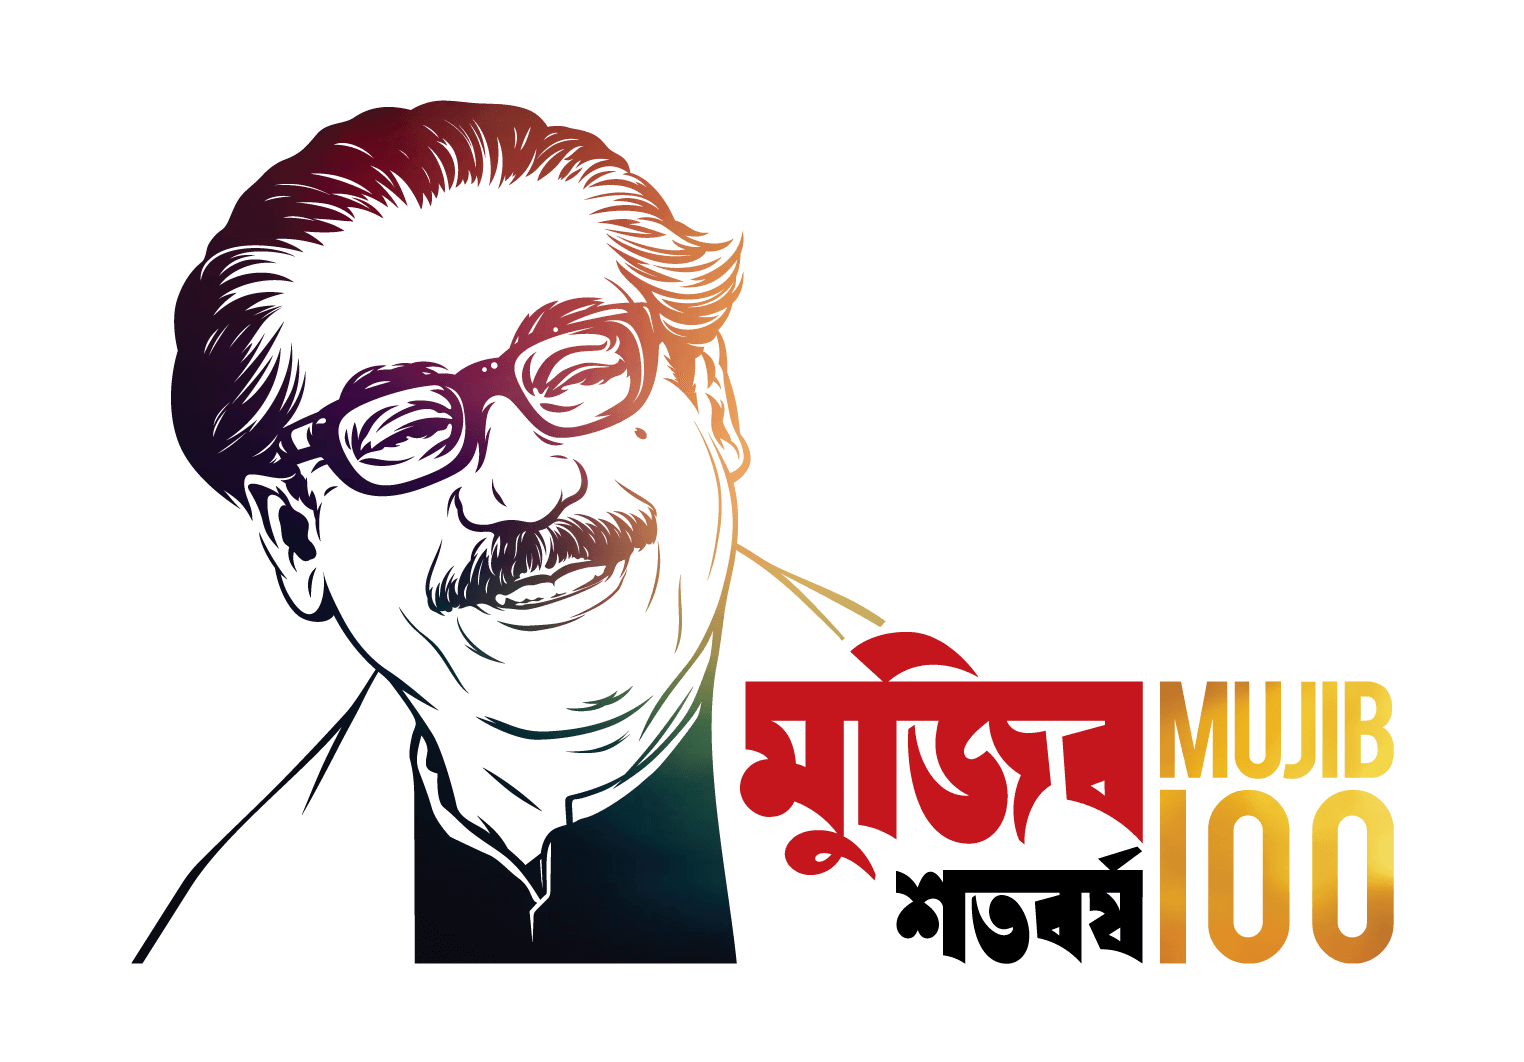 100 years of mujib